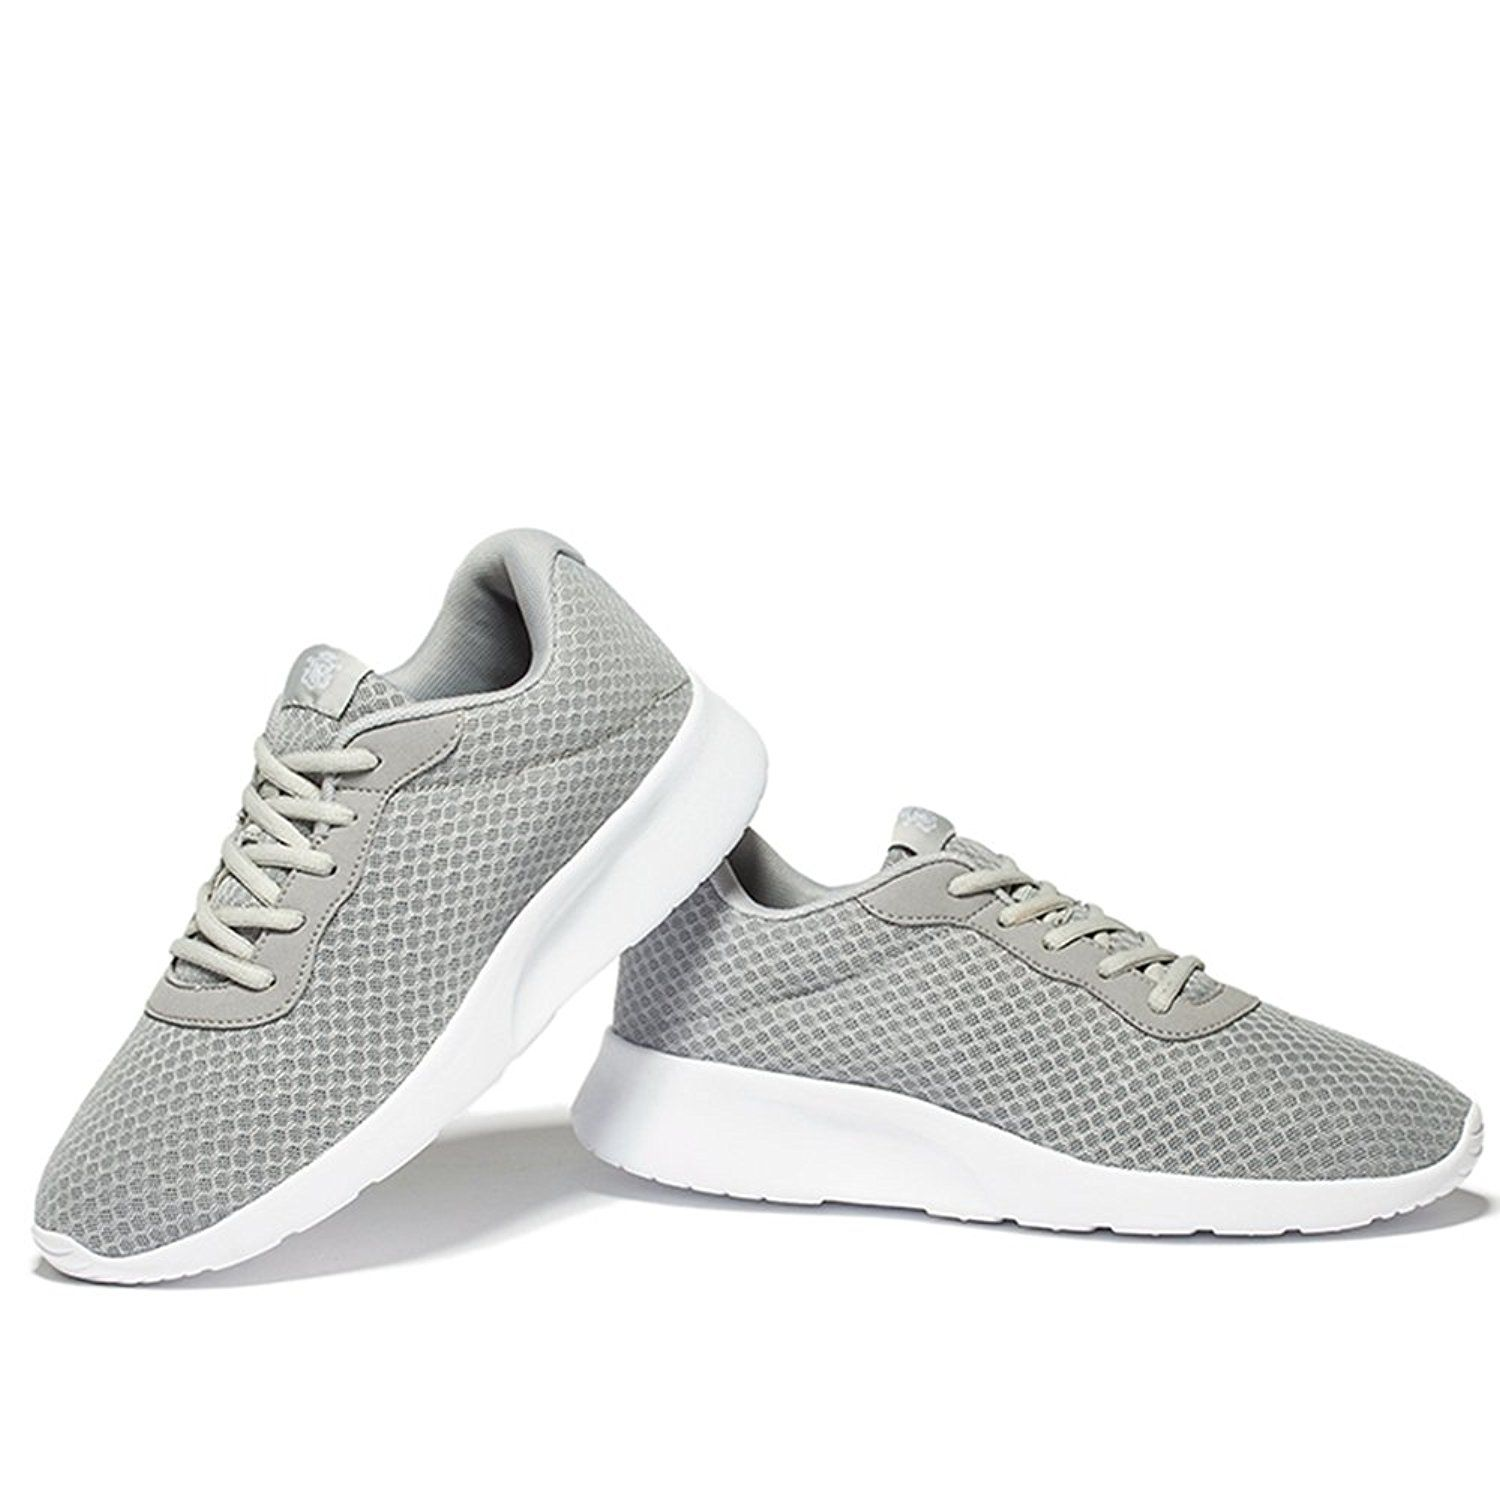 adfc91f73d2b NewDenBer Women's Casual Lightweight Walking Sneakers Breathable ...